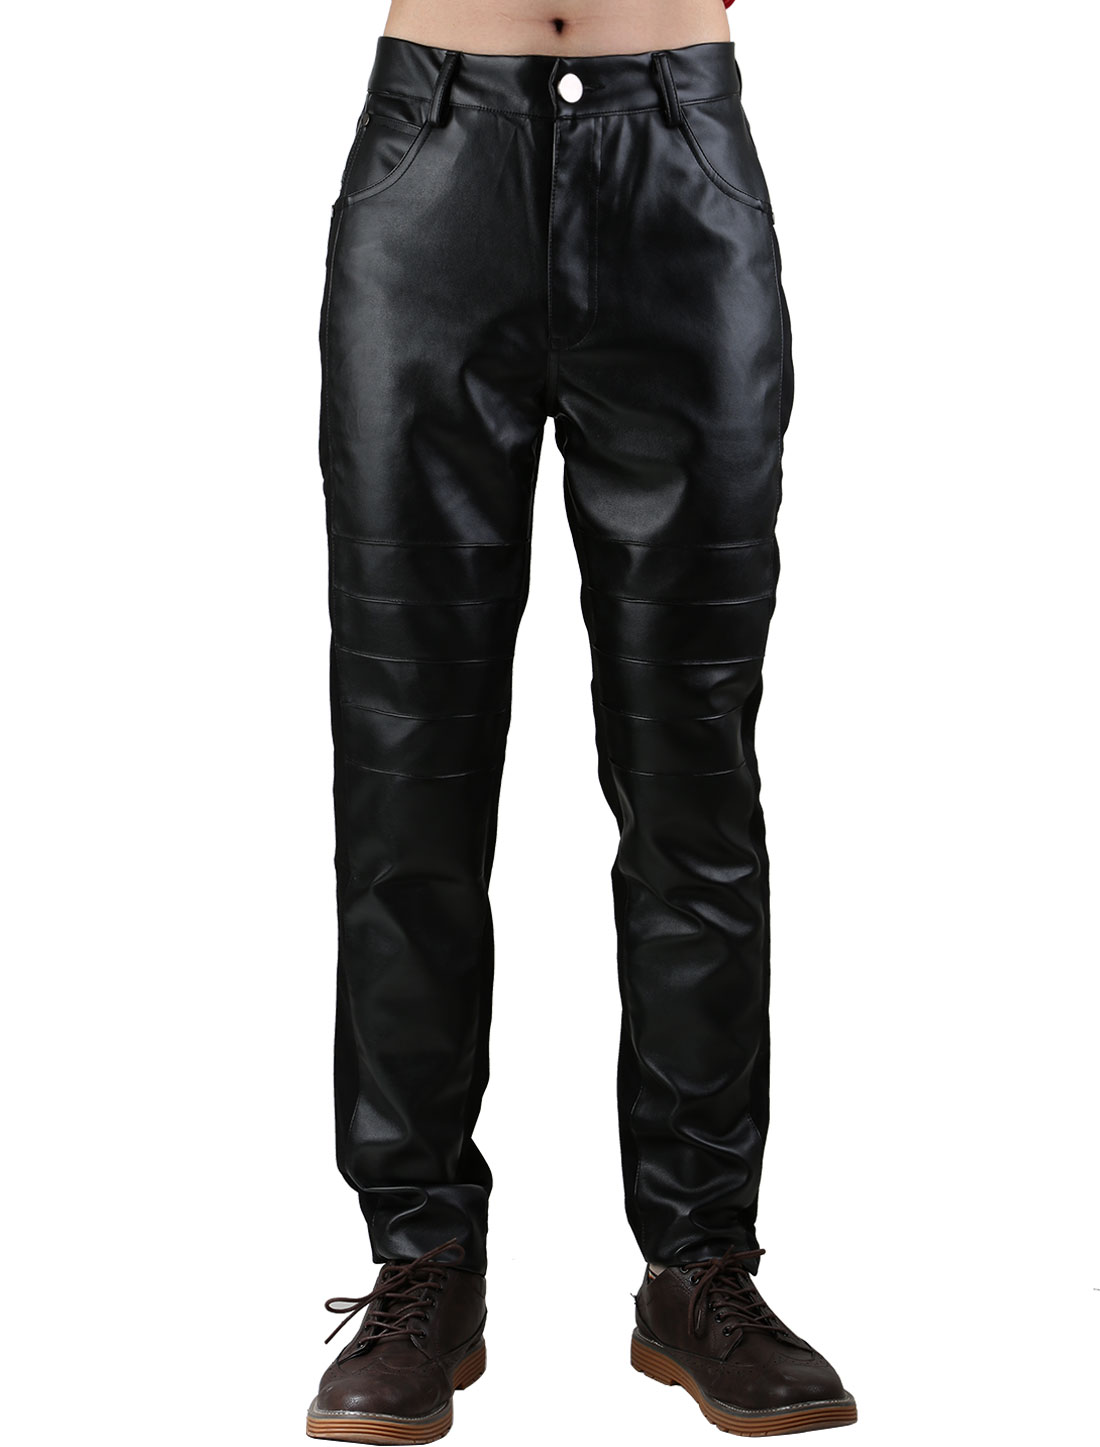 Men Zipper Fly Five Pockets Pleated Imitation Leather Panel Casual Pants Black M